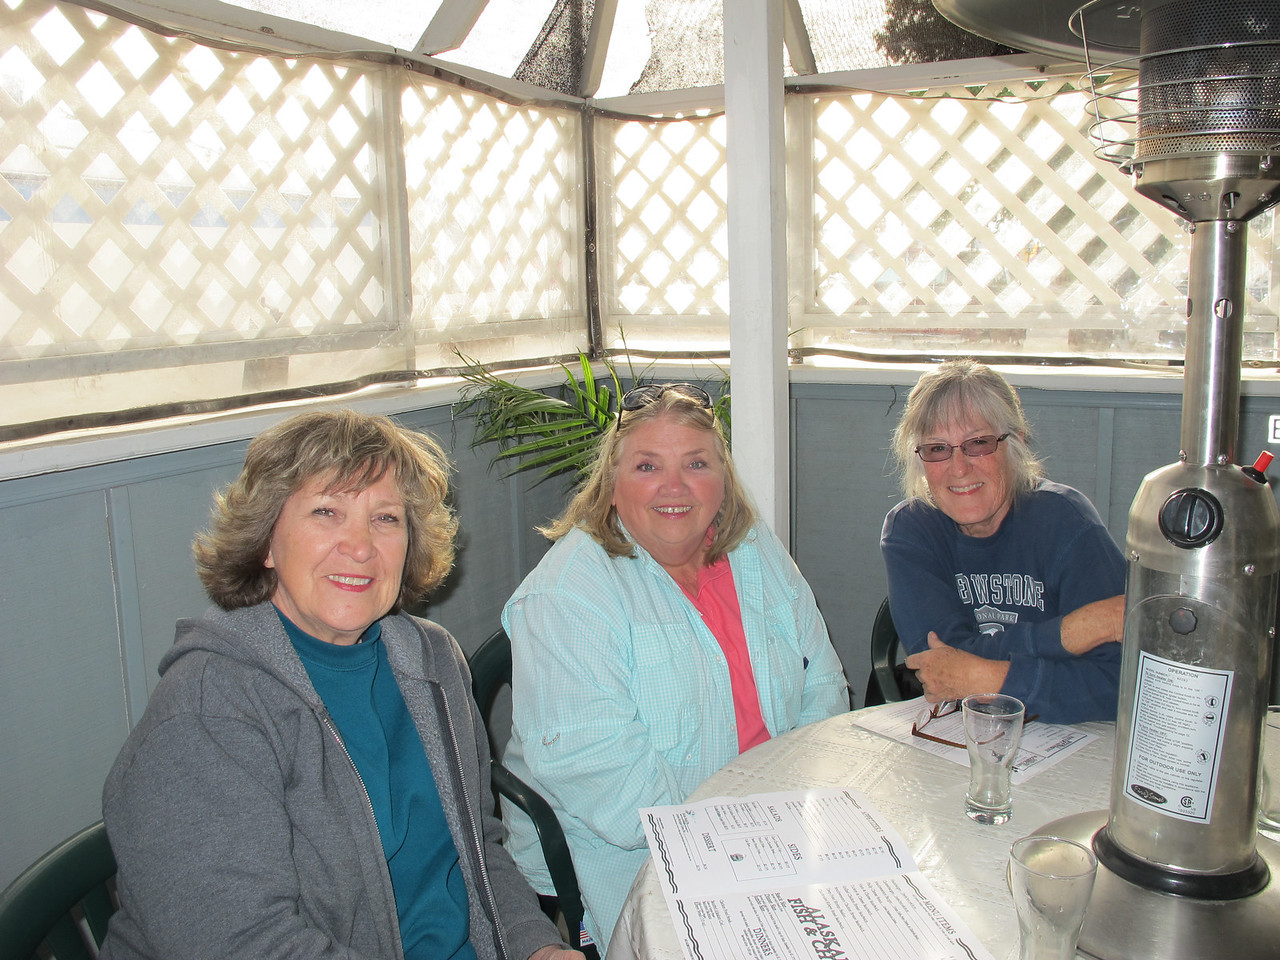 Jan (GrandJan), Diane (Sage) and me at the Quartzsite Yacht Club. We ordered their tasty fish & chips!